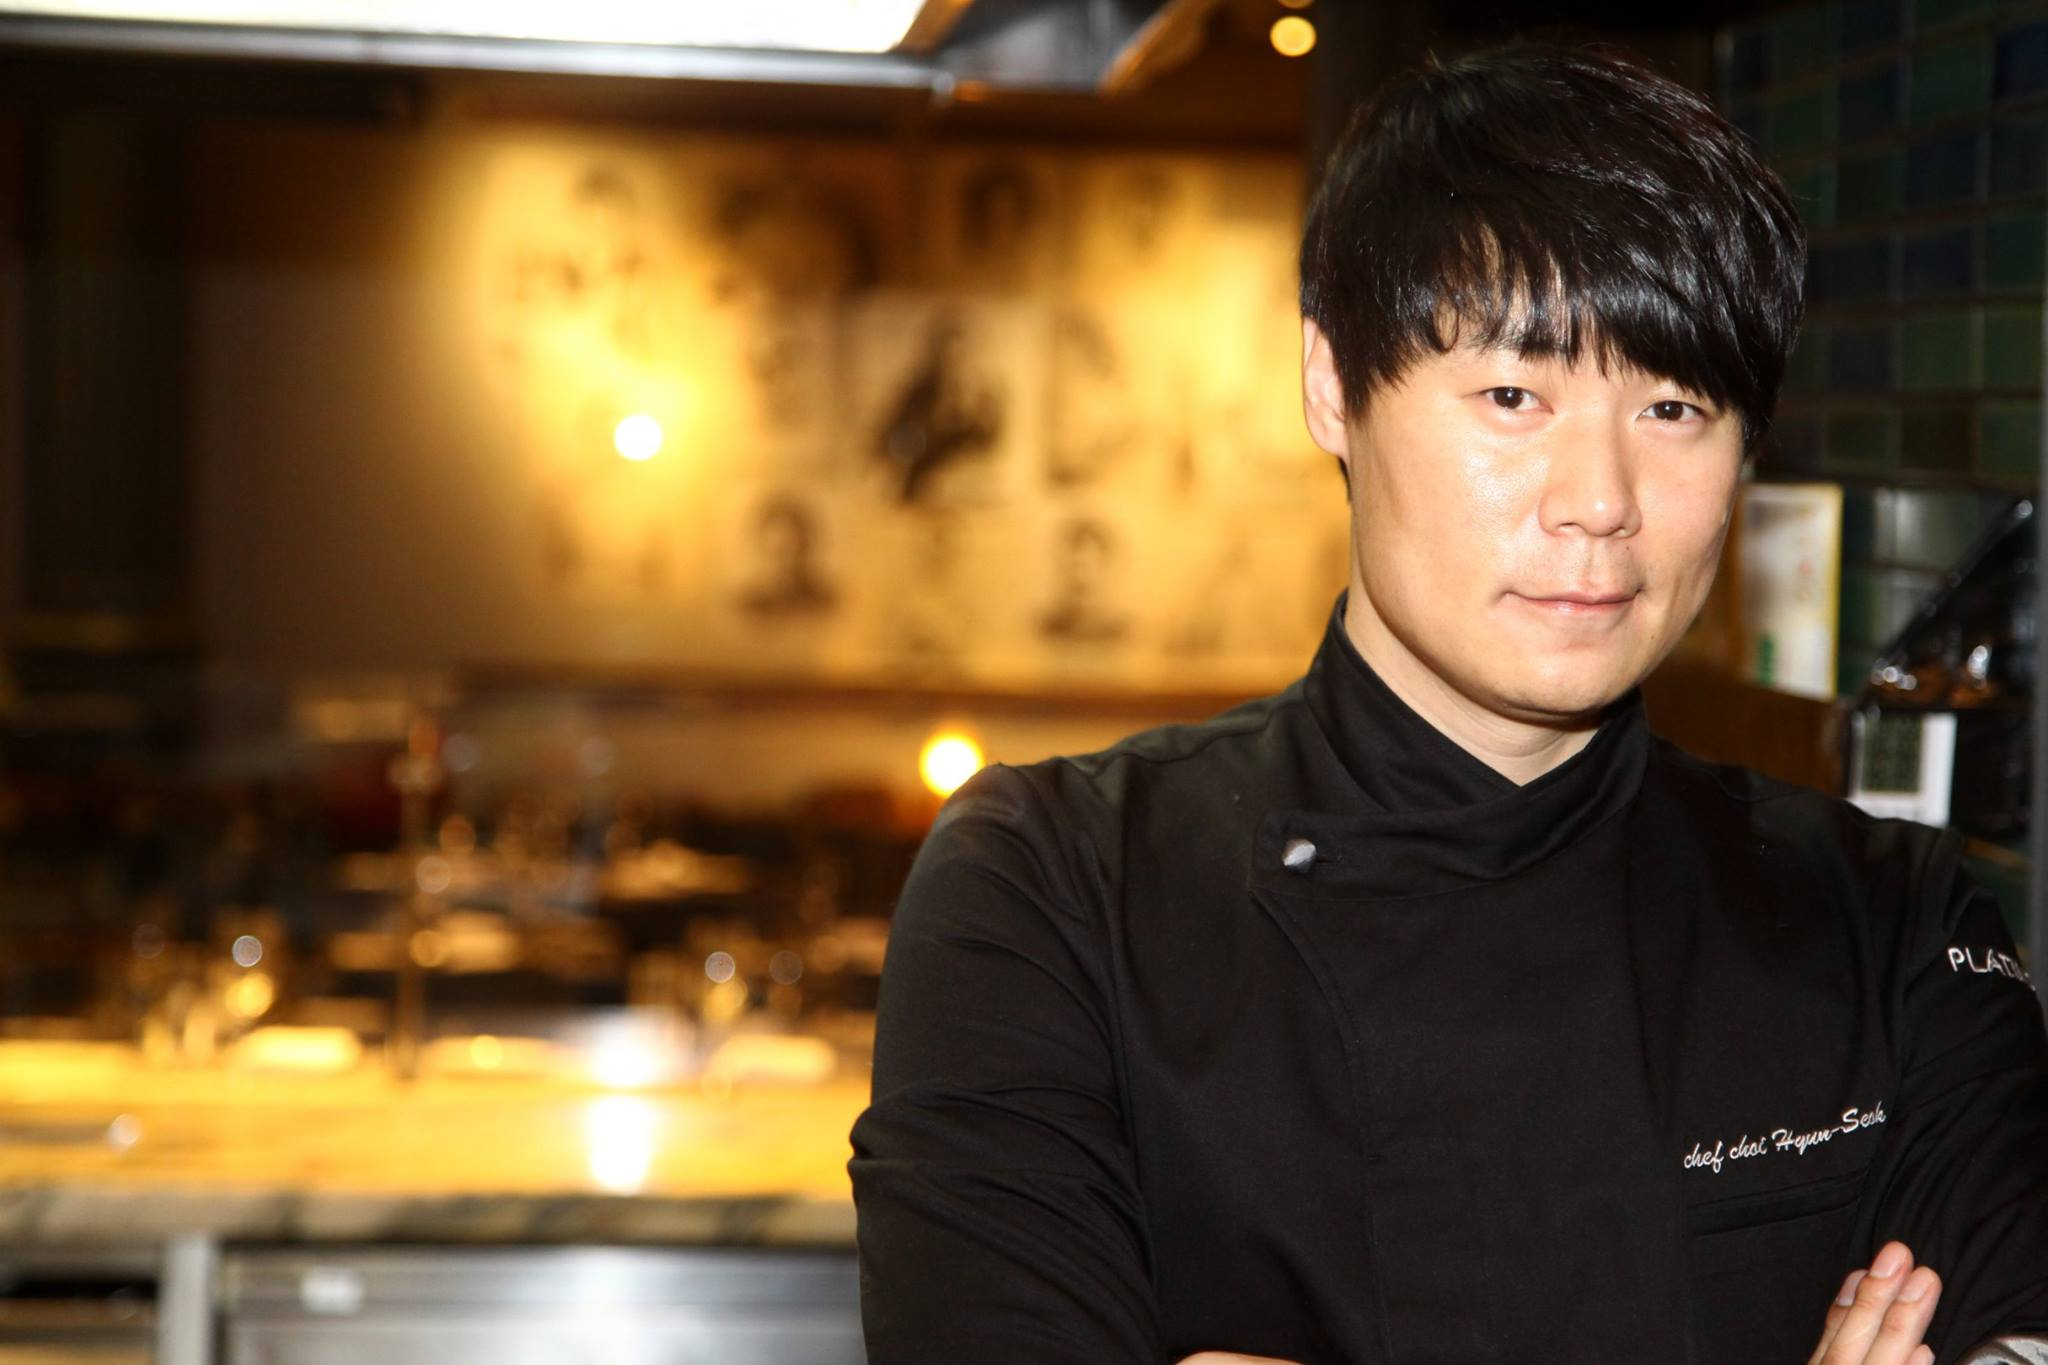 chefs-society-chef-hyun-seok-choi-from-korea-at-chefs-club-portrait